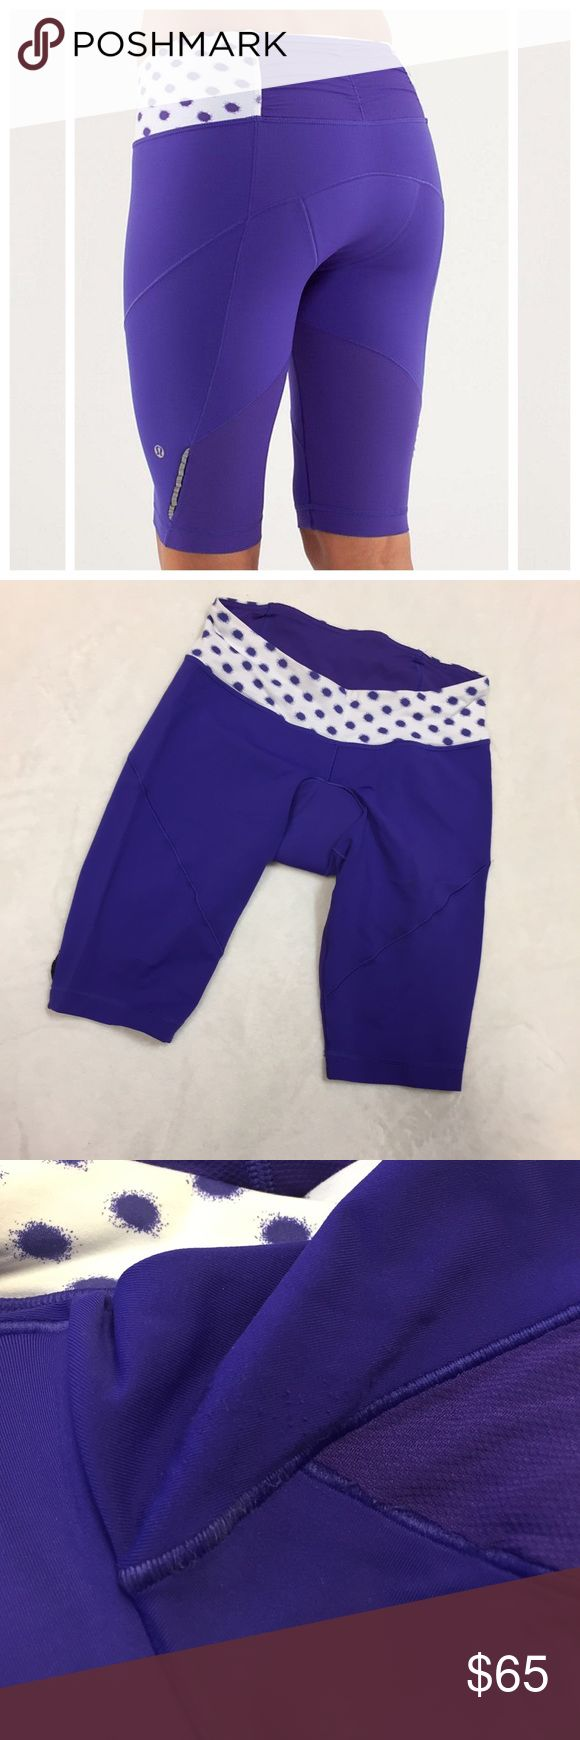 Lululemon Presta Padded Shorts Awesome padded biking shorts from Lululemon!                                                                    Only worn a few times, look brand new.                                 Some pilling on the inside of one thigh, can't be seen while wearing.                                                    Size 6.                                                              Purple with polka dots.                                 Drawstring. lululemon athletica…